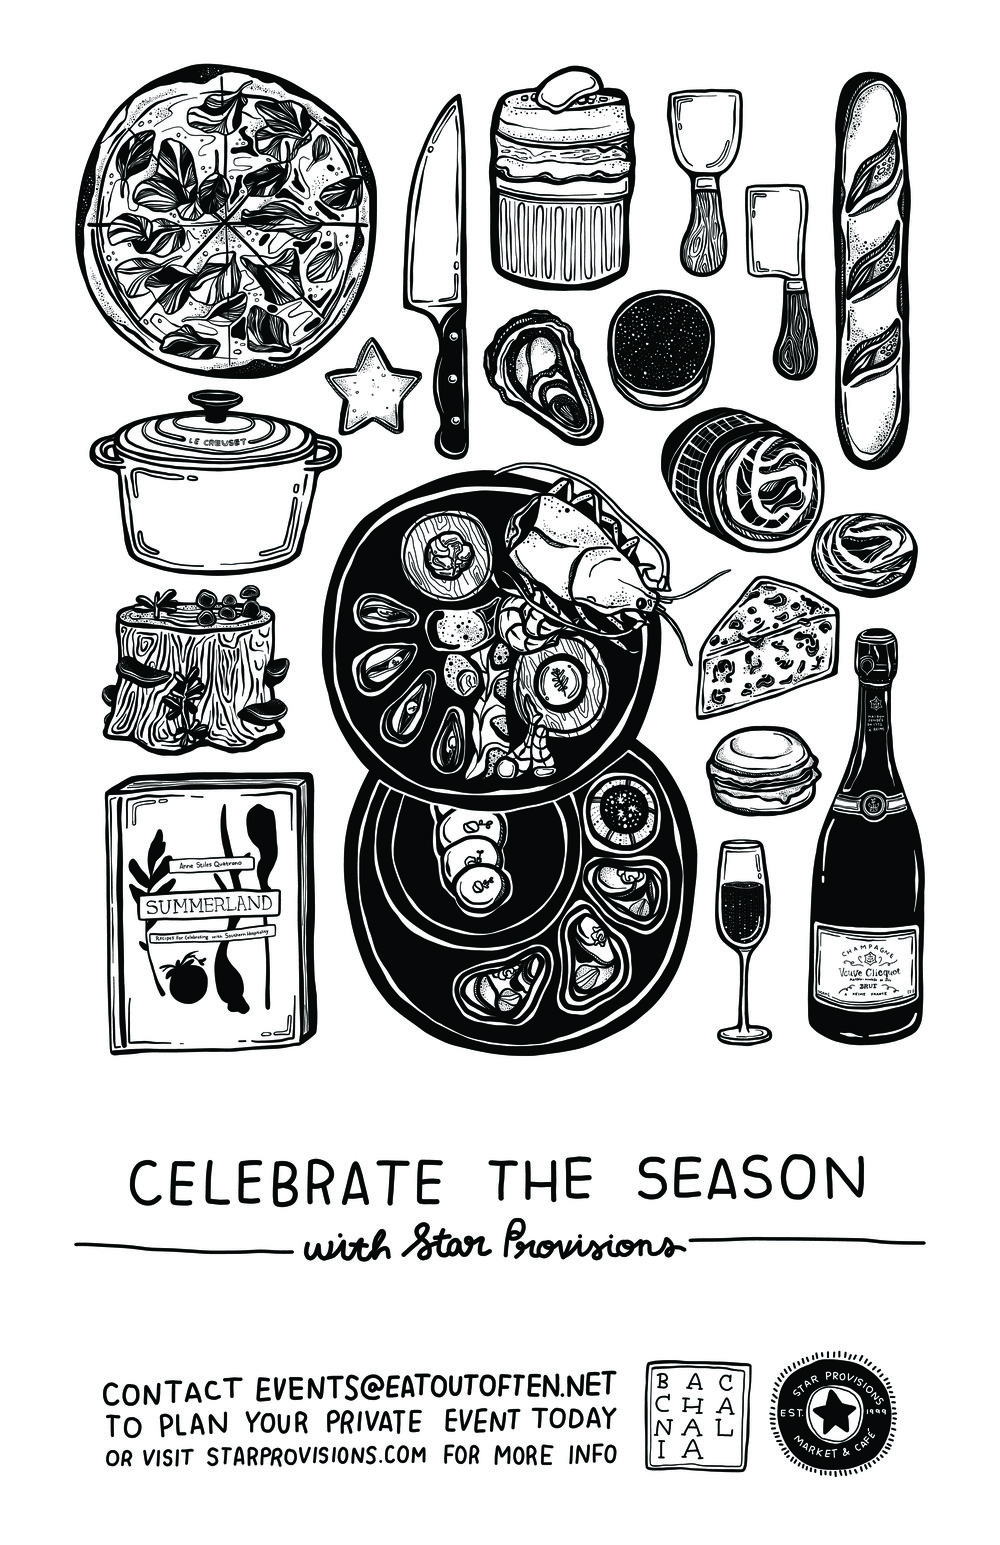 Star Provisions, poster